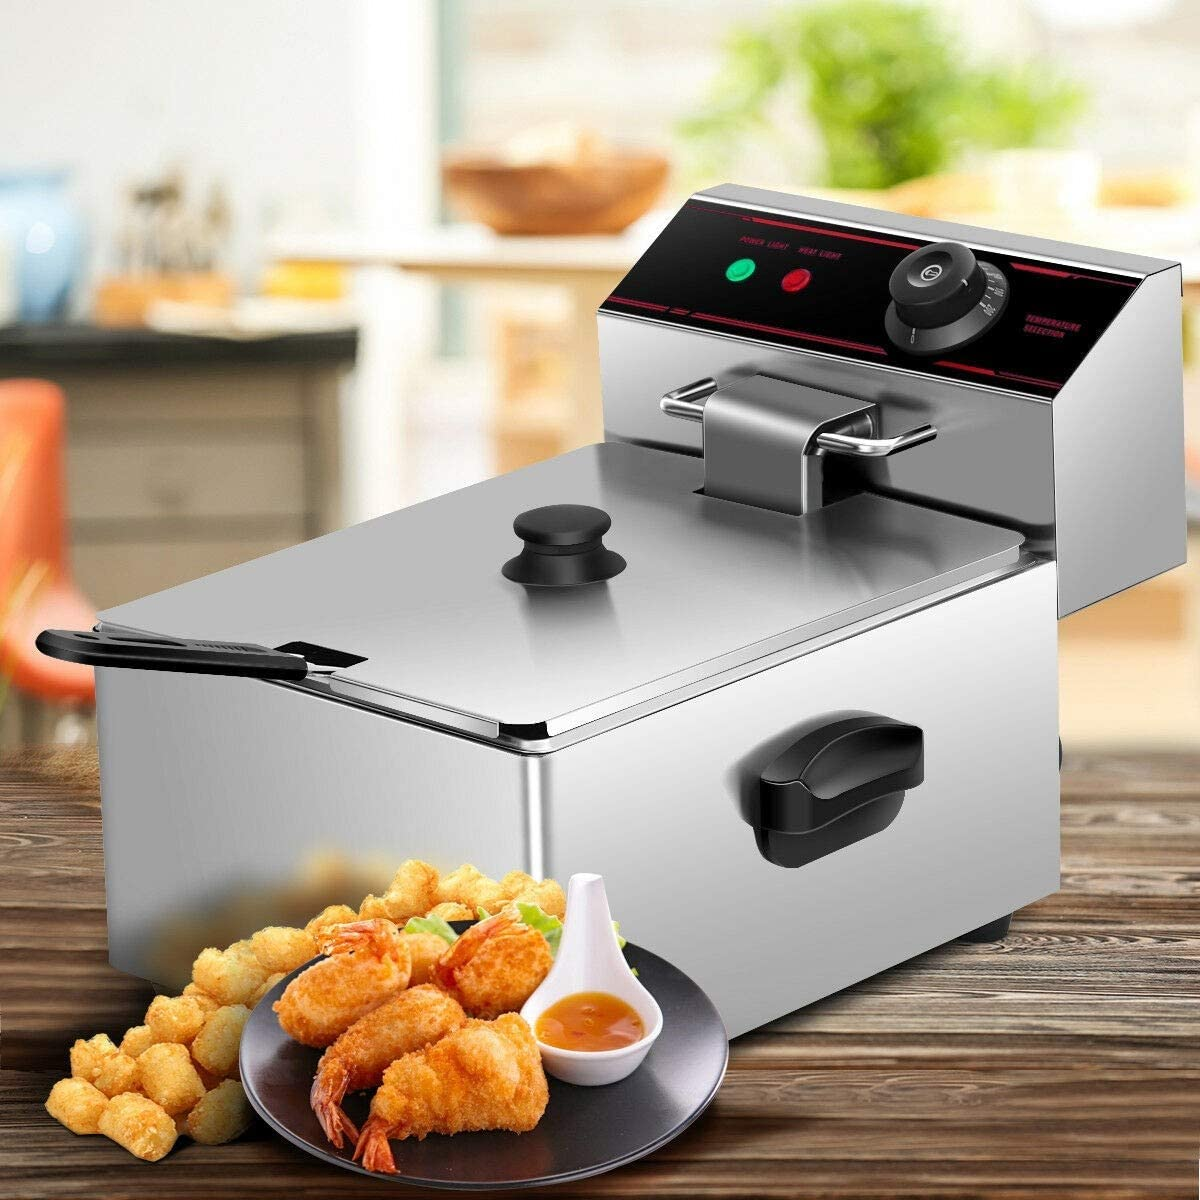 2500W 6L Single Electric Deep Fryer with Basket Scoop 110V Advanced cooking Technology Electric Countertop Deep Fryer Basket Restaurant French Fries, onion rings, fried chicken easy to use and clean